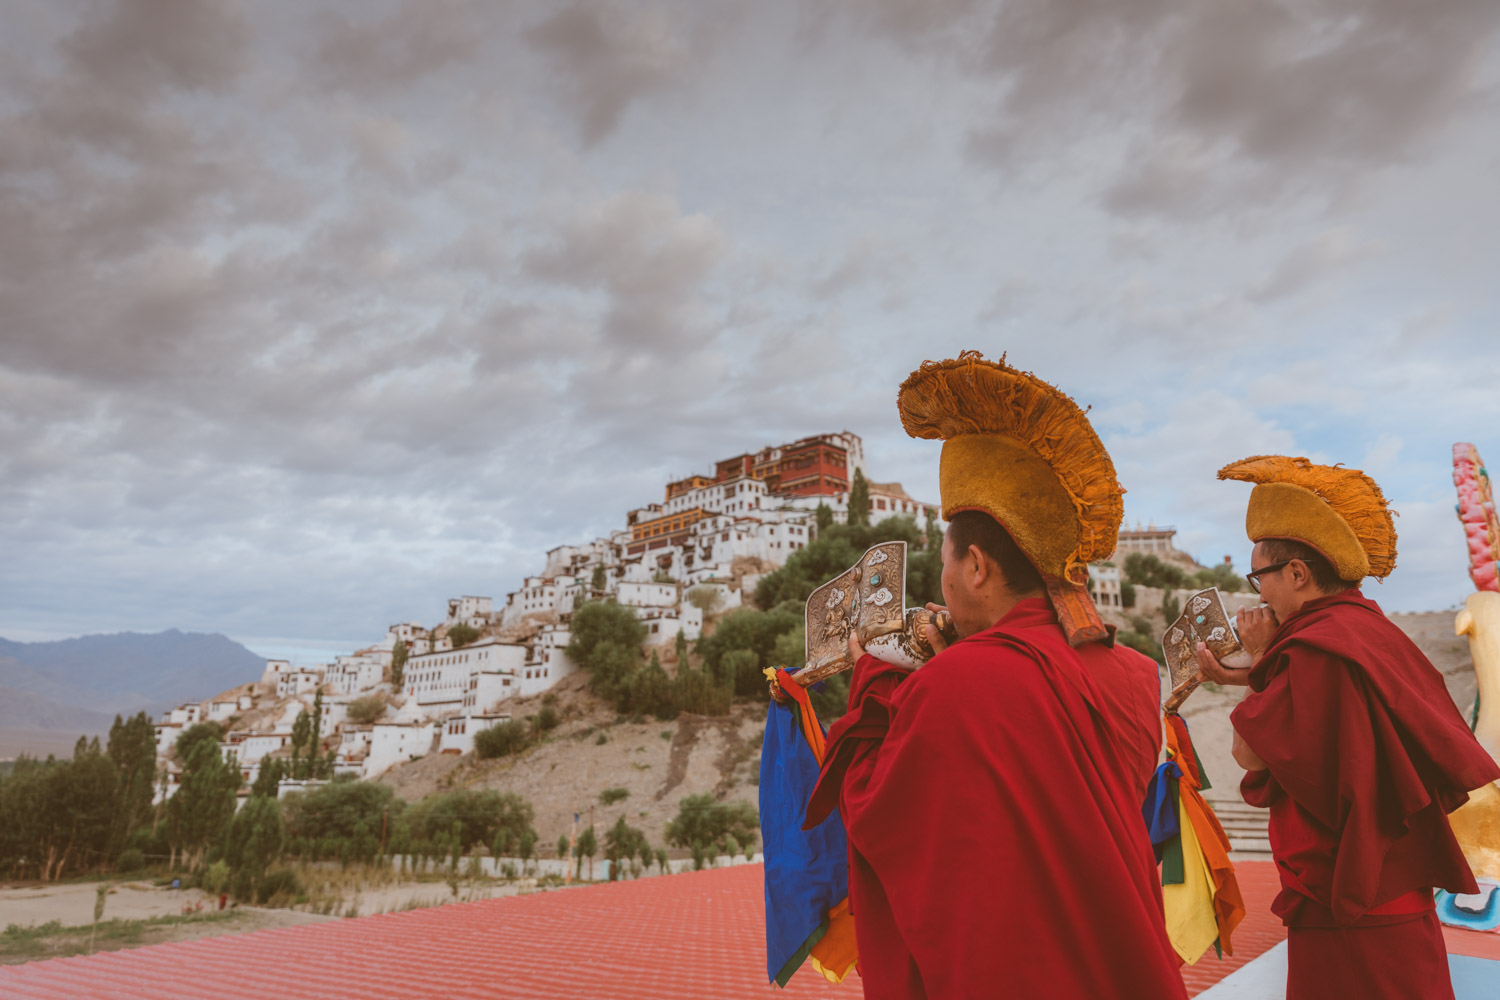 Robbed Tibetan monks each morning sound through Thiksey valley with conch shells